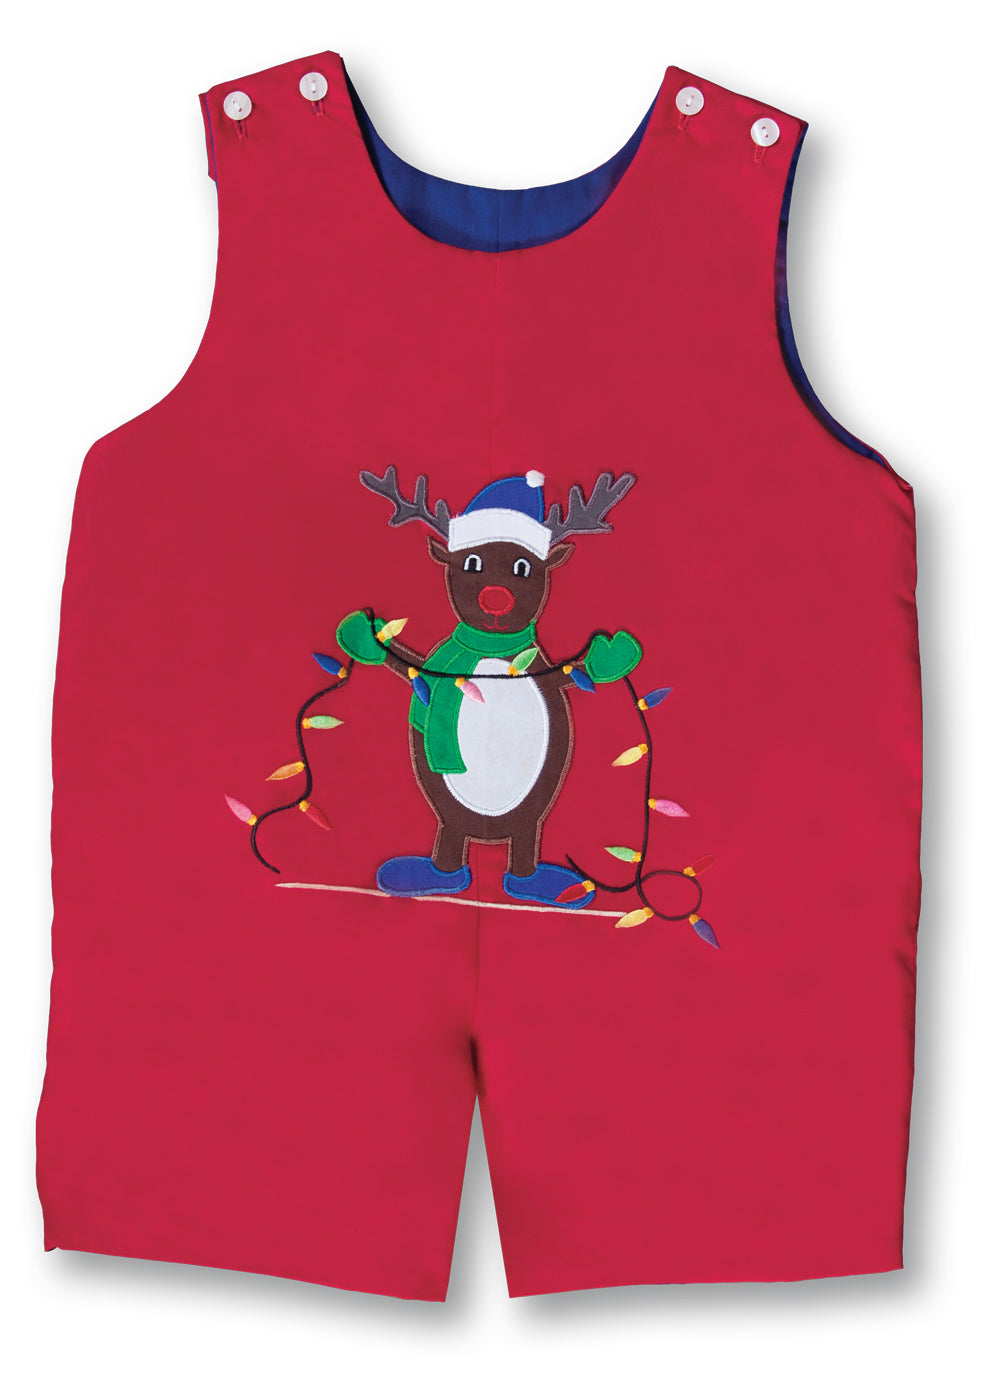 Rudolph Holiday Lights Red Reversible Romper 17H 6082 R